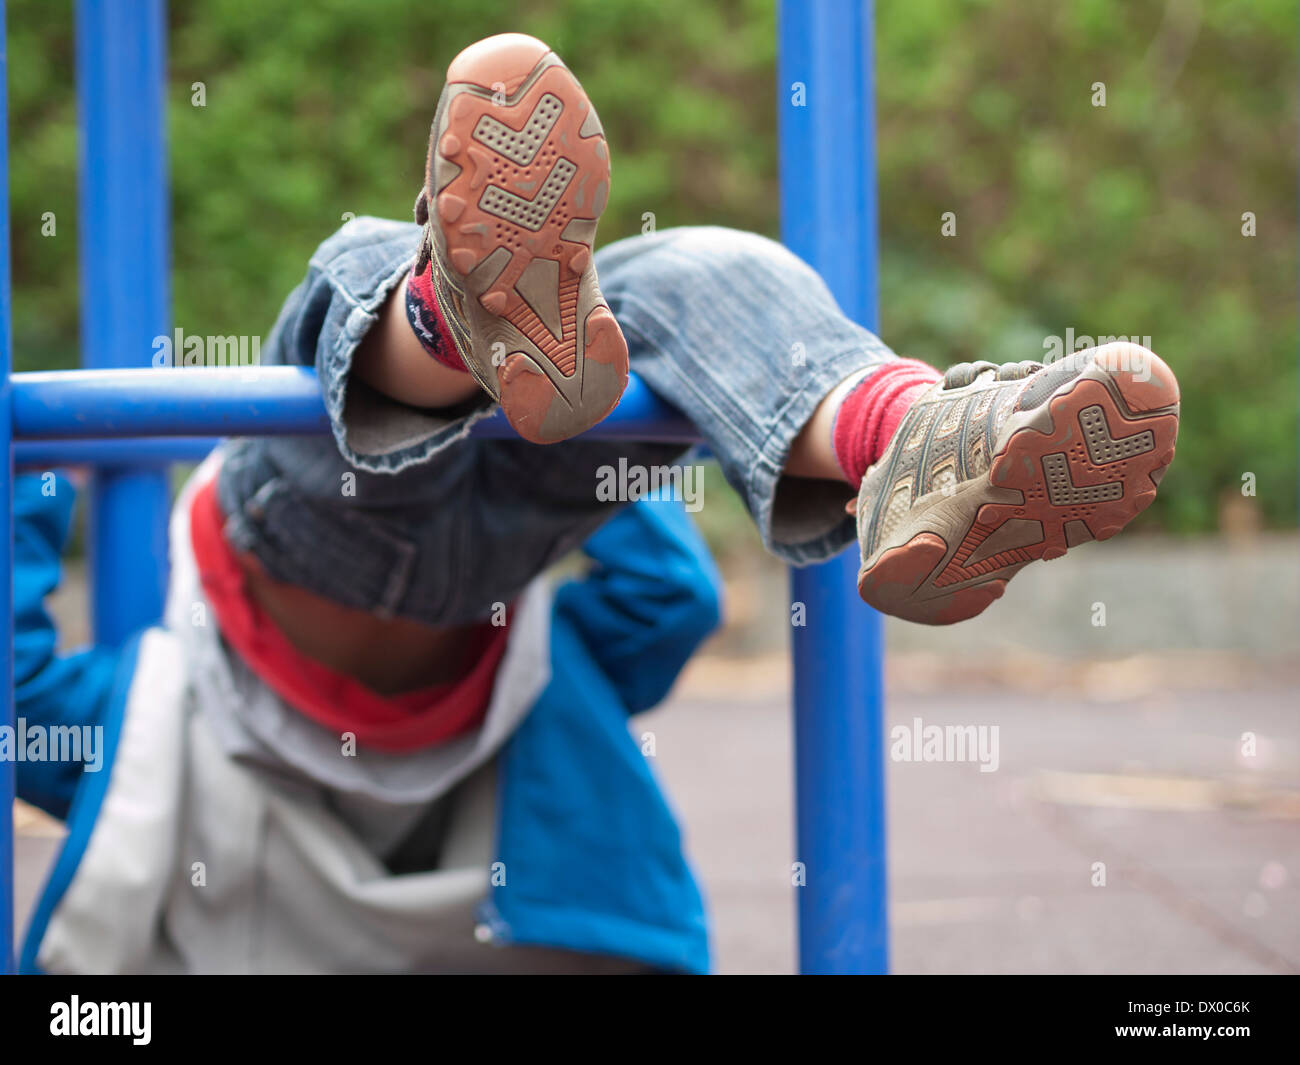 Child hanging upside down in climbing frame of a playground. Focus on feet with shoes only. Parts of climbing frame visible. - Stock Image